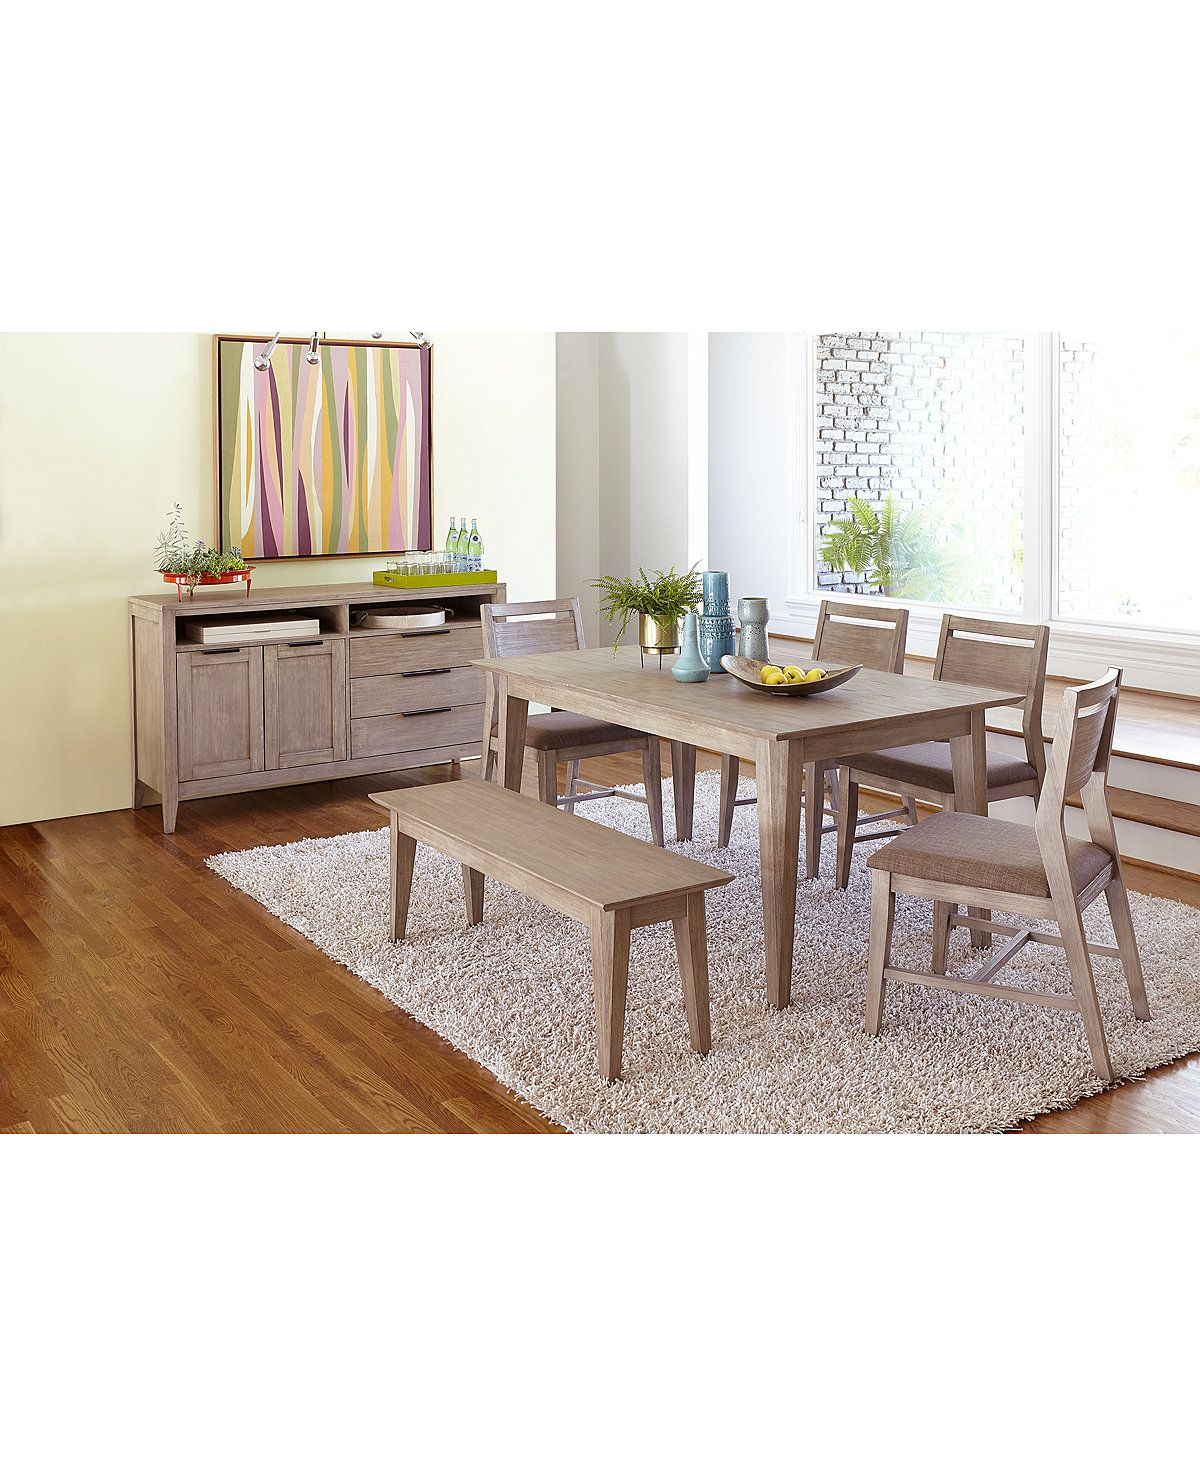 Kips Cove Dining Furniture, 4-Pc. Set (Dining Table, 2 Side Chairs ...